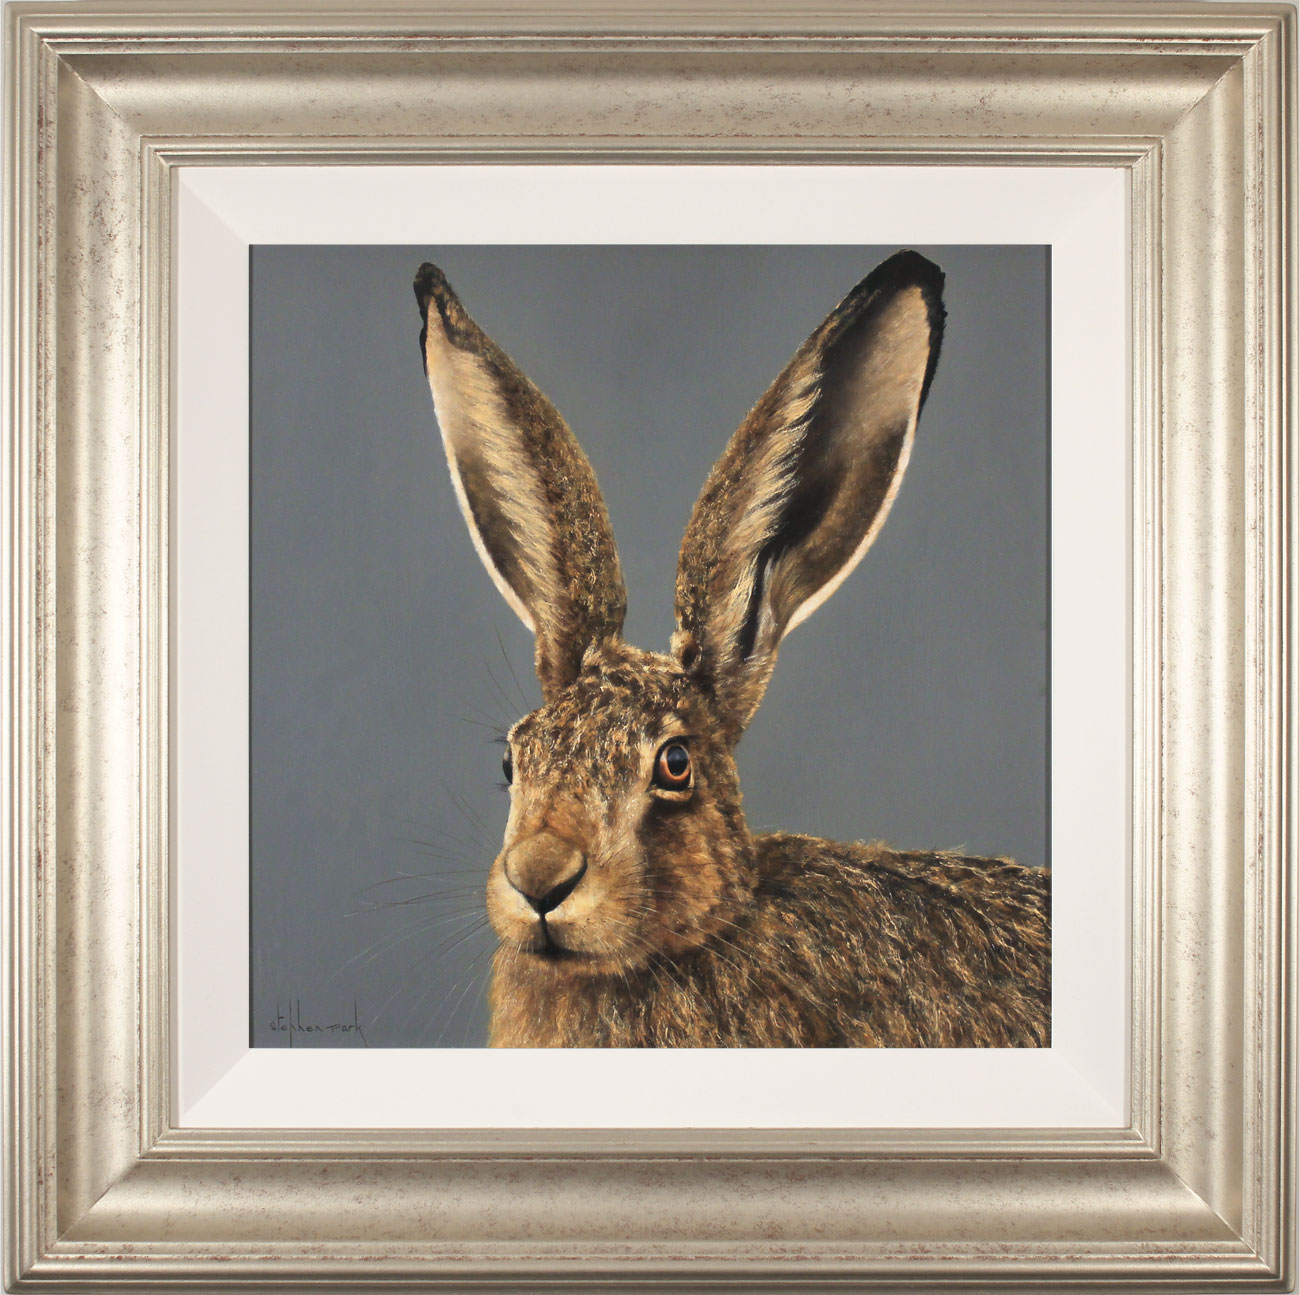 Stephen Park, Original oil painting on panel, Hare, click to enlarge